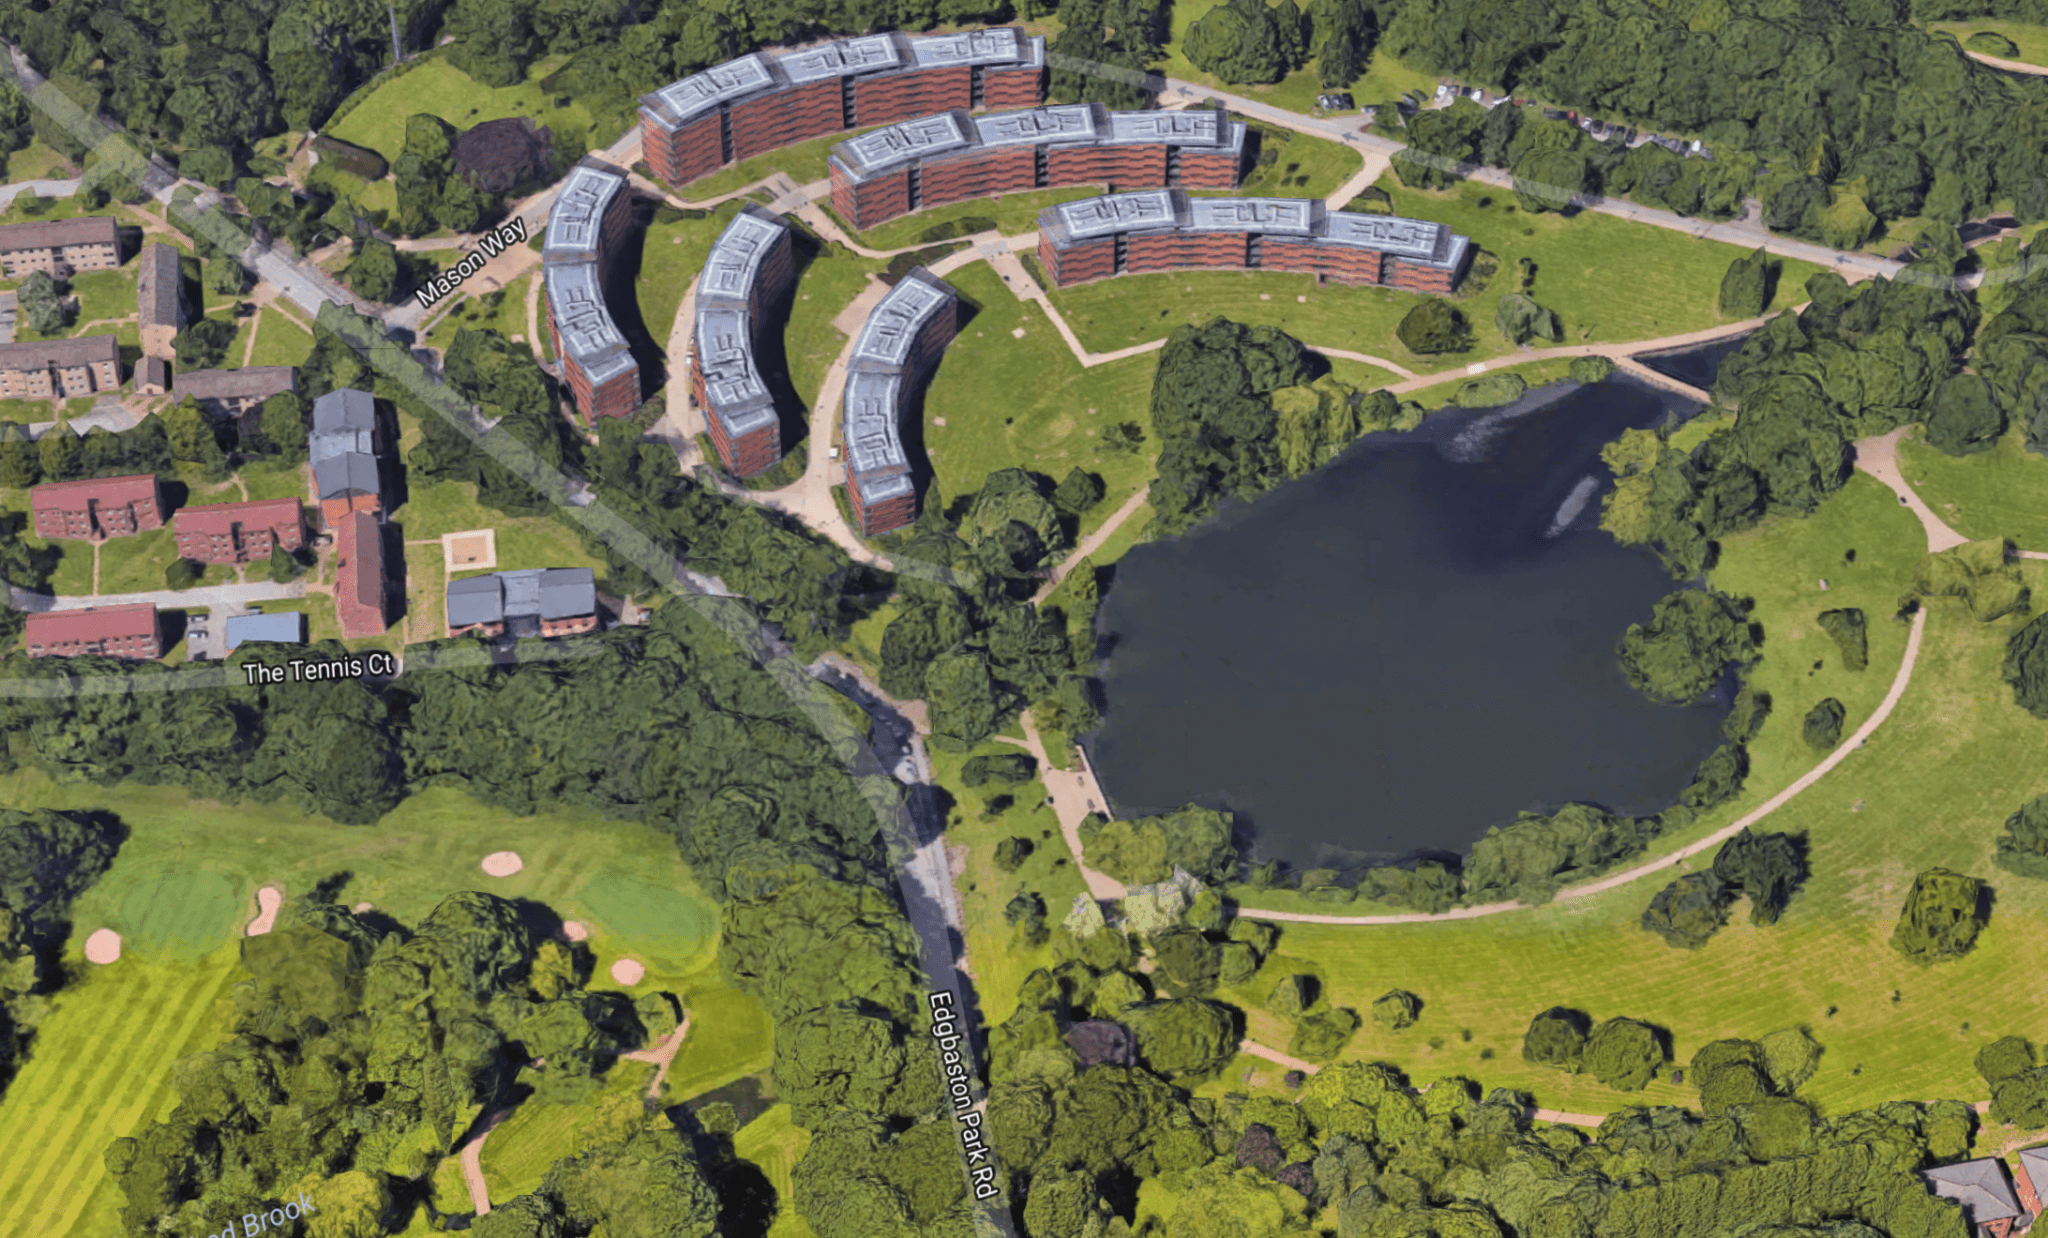 Missing man found dead in lake on University of Birmingham campus ...